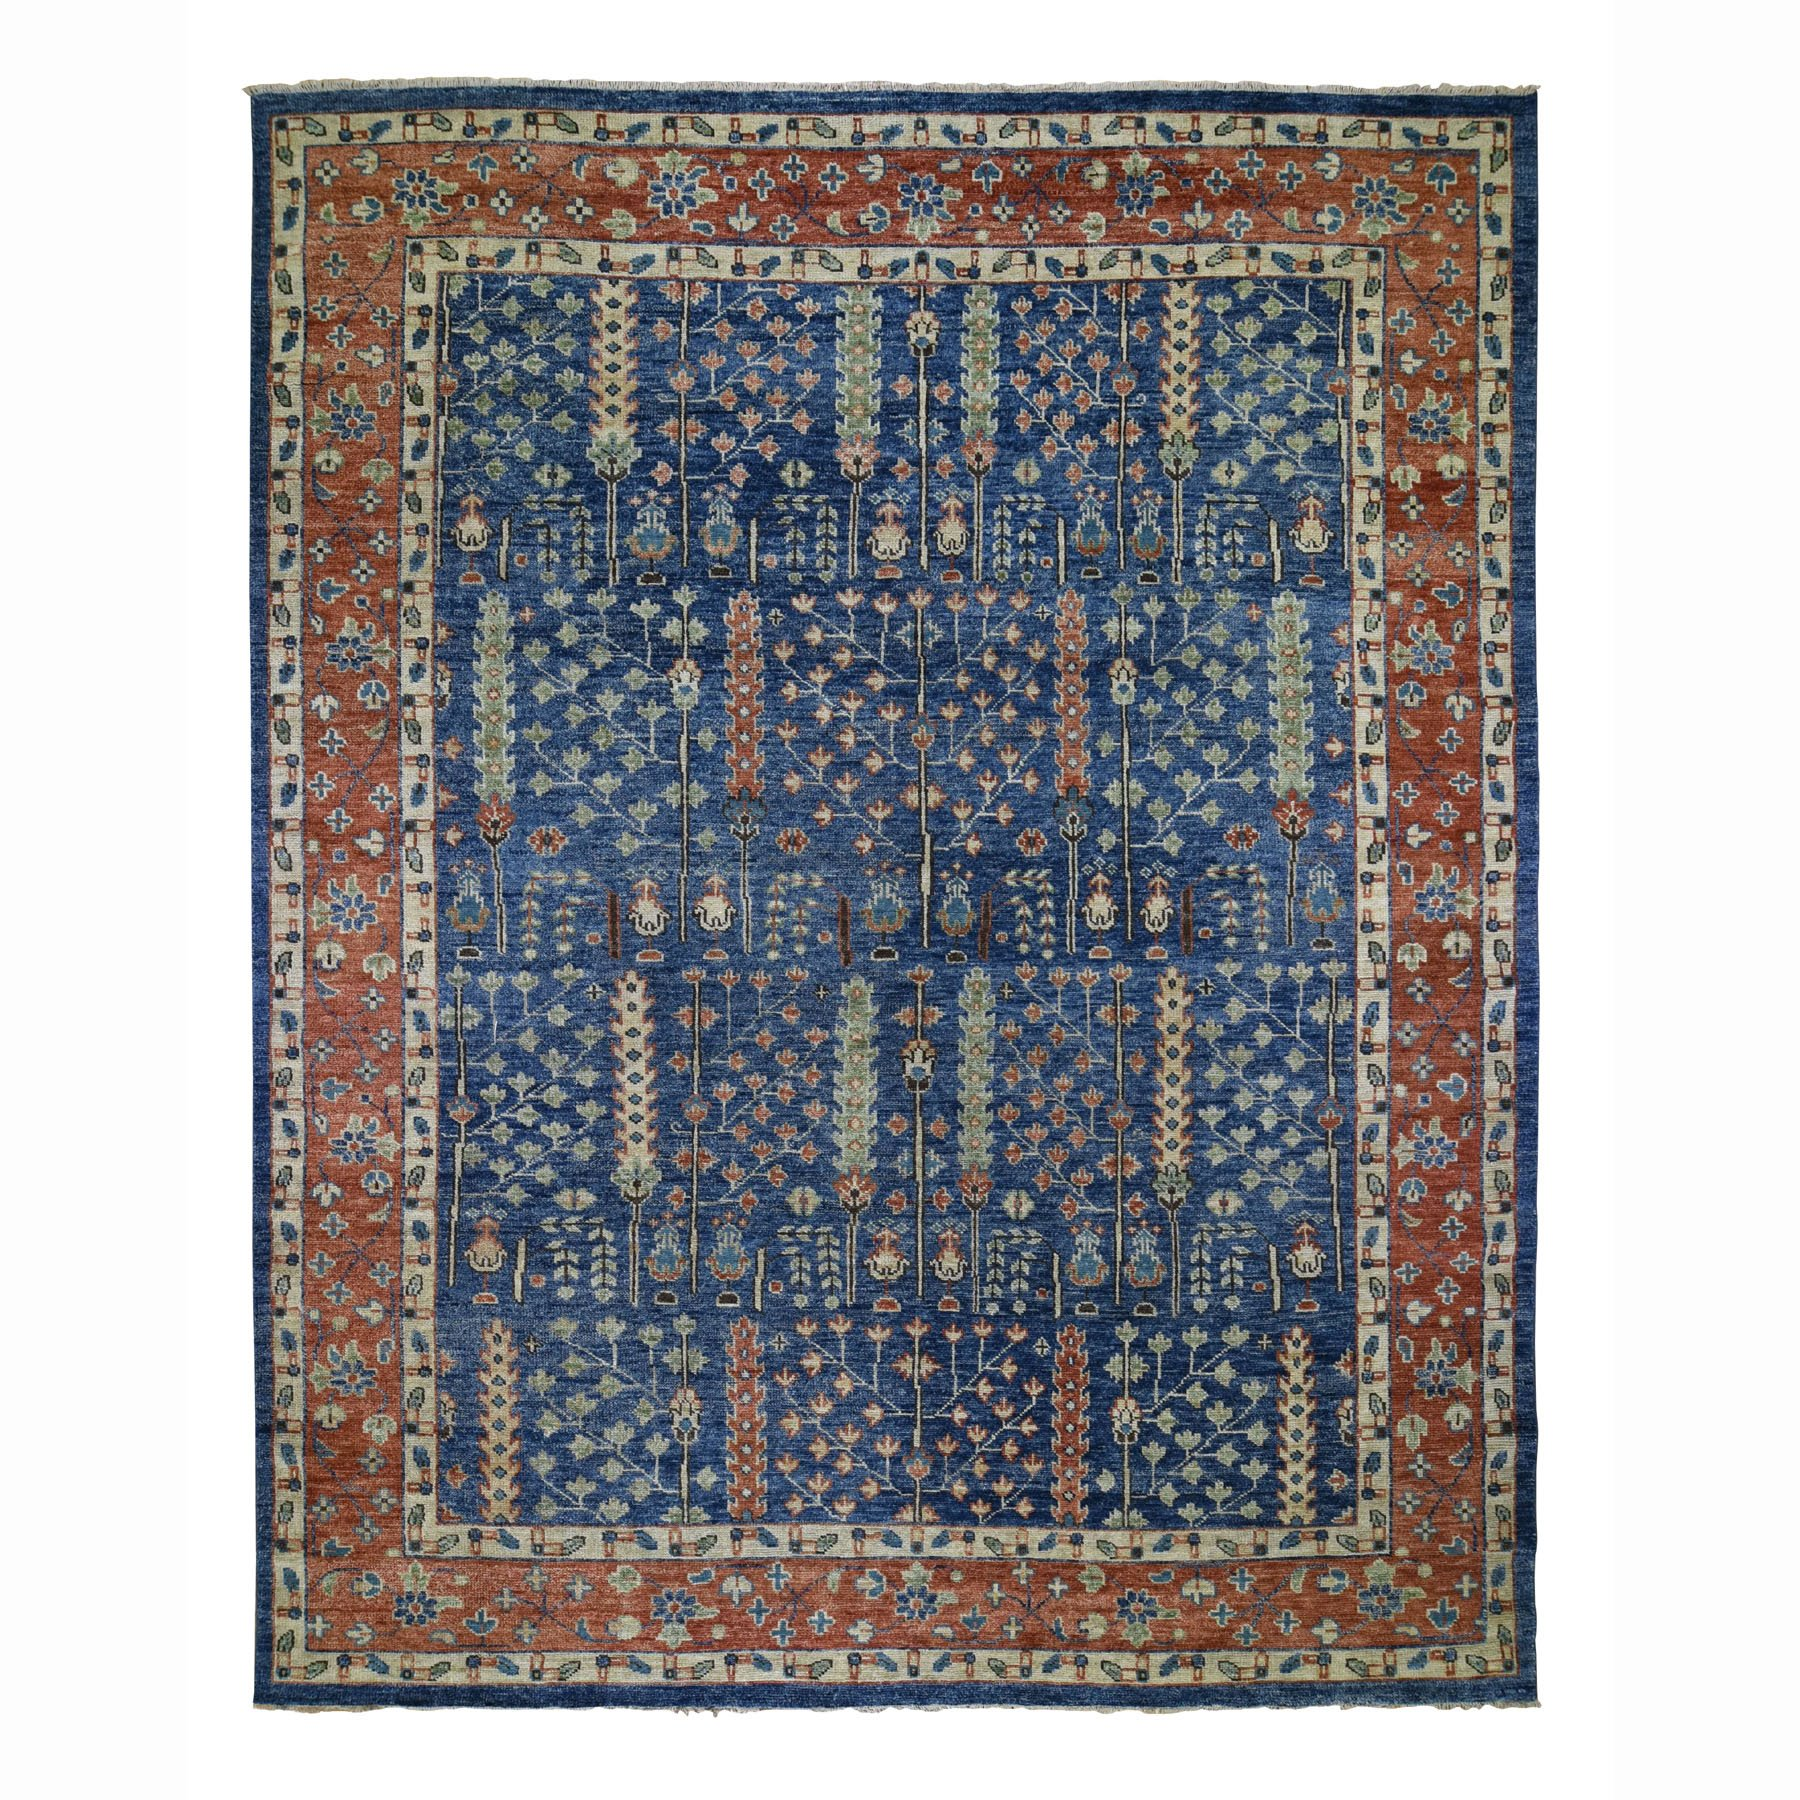 12'X15' Oversized Navy Blue Supple Collection With Tree Design Soft Wool Hand Knotted Oriental Rug moad78d8